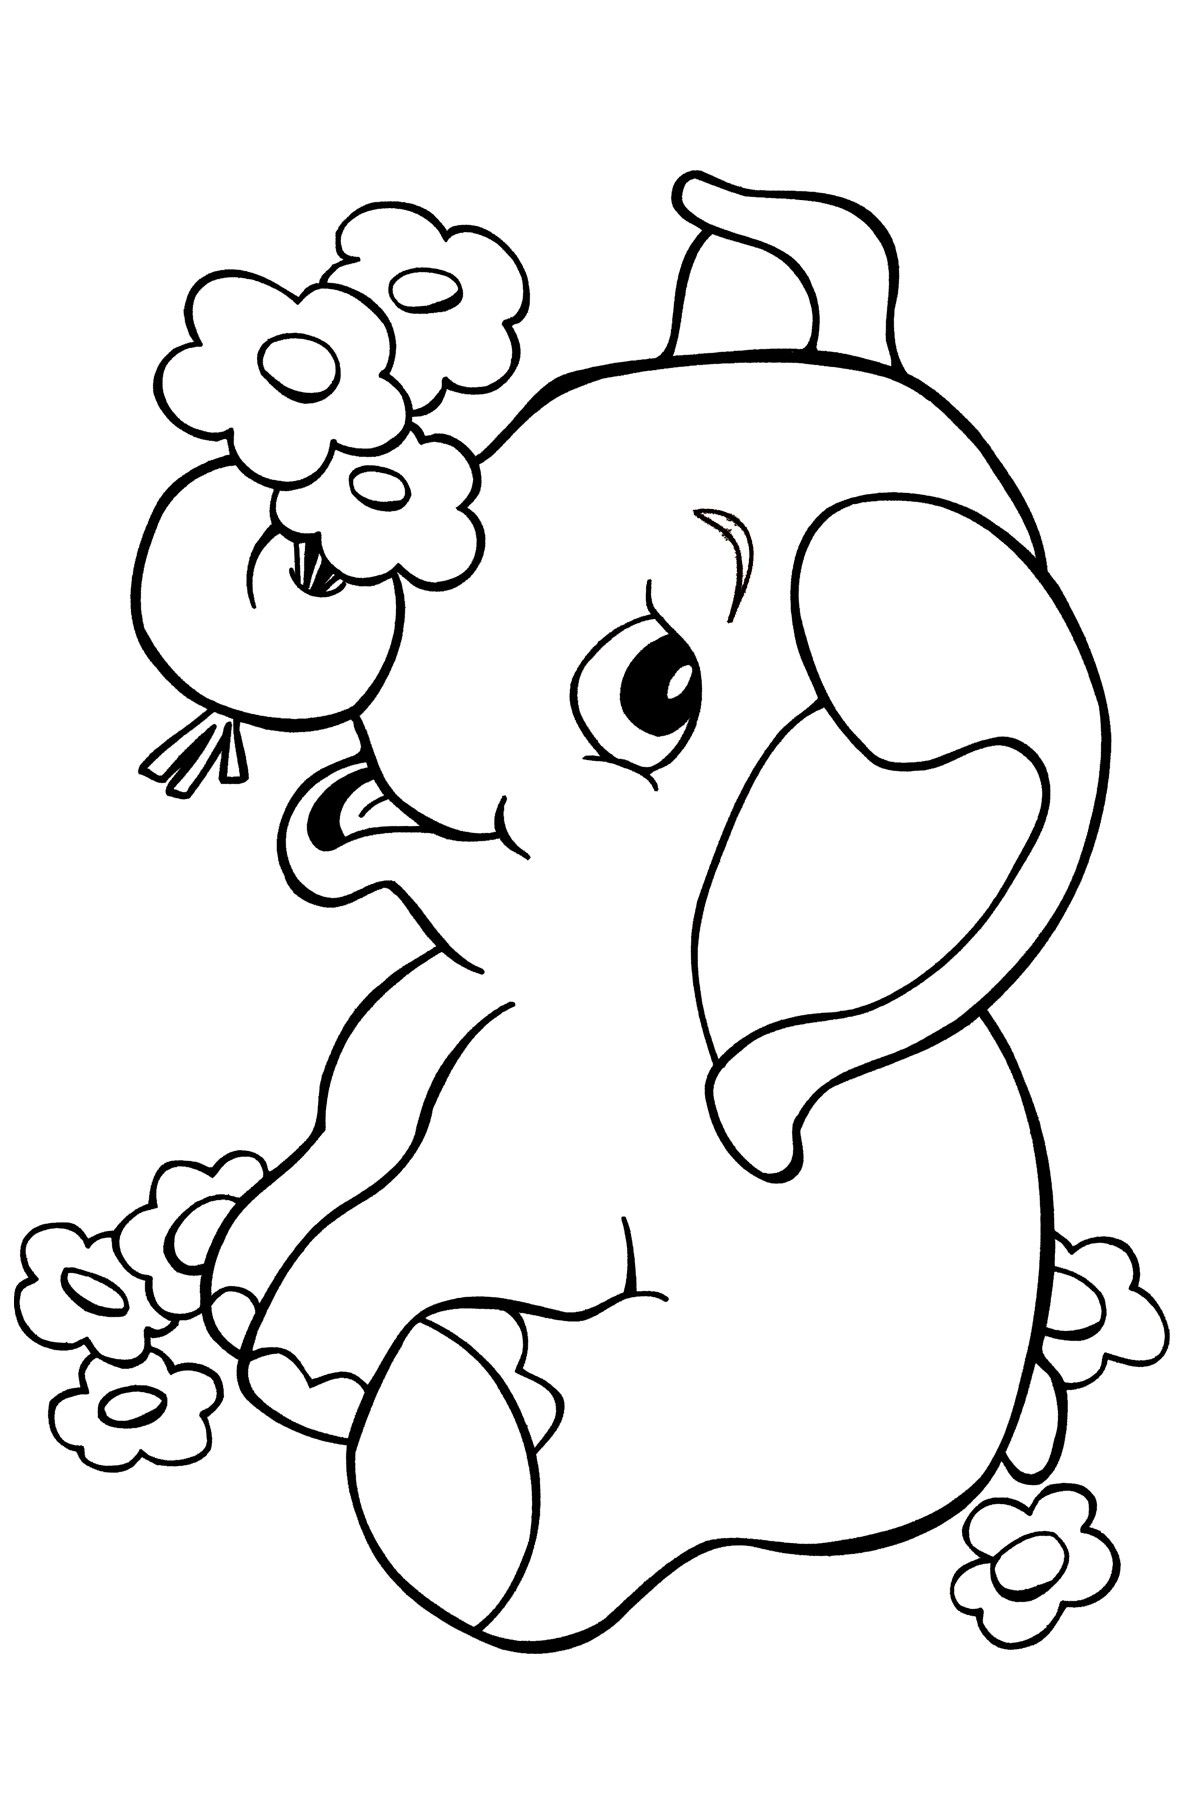 Elephant Coloring Book For Kids Free Printable Elephant Coloring